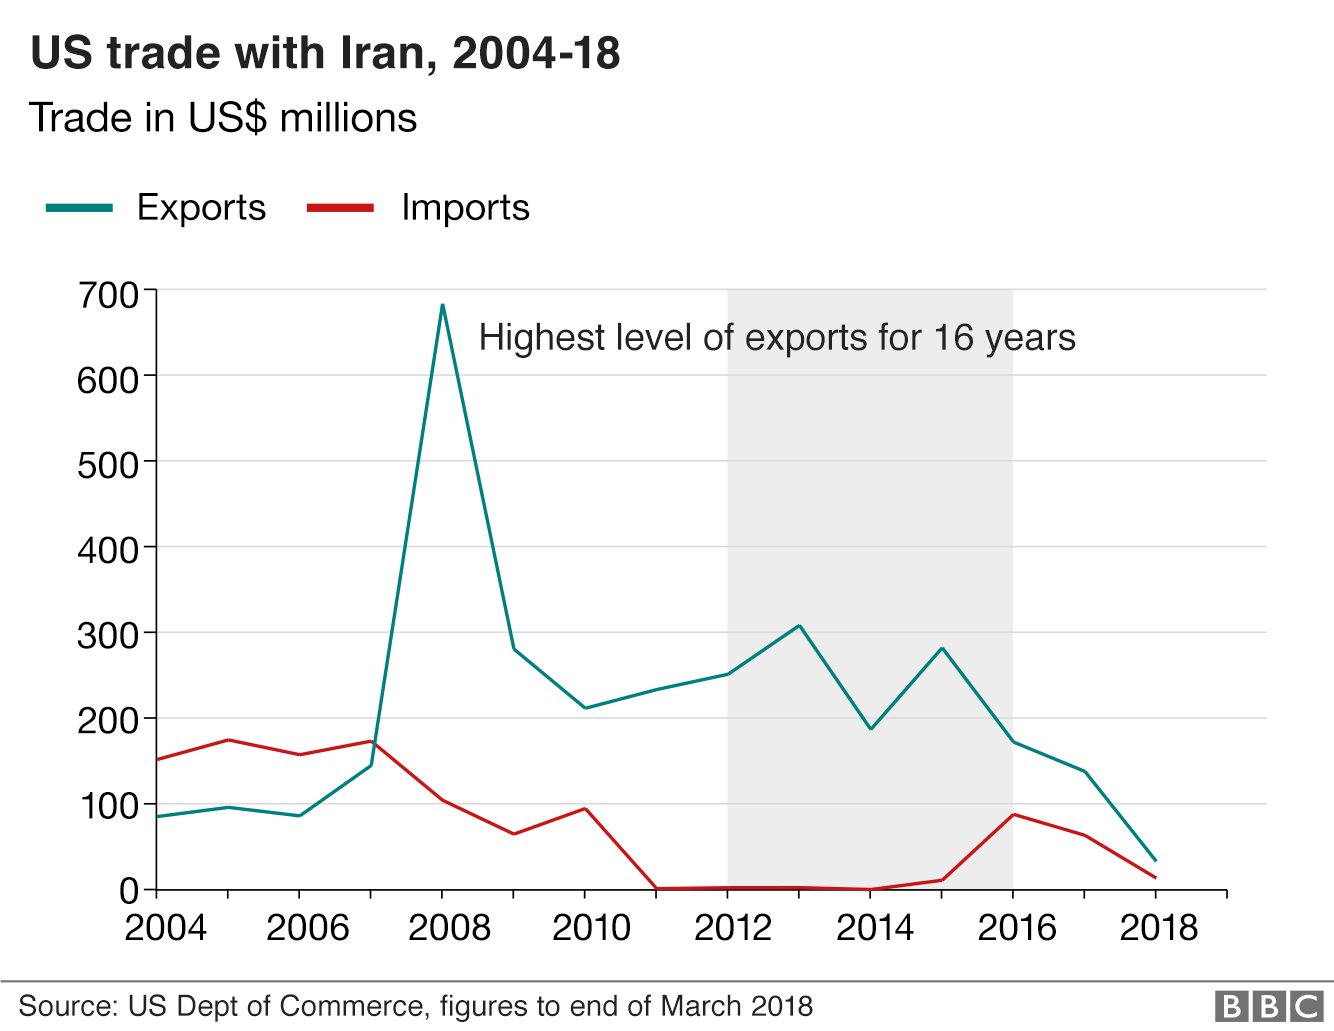 Graph showing value of US trade with Iran between 2004-18